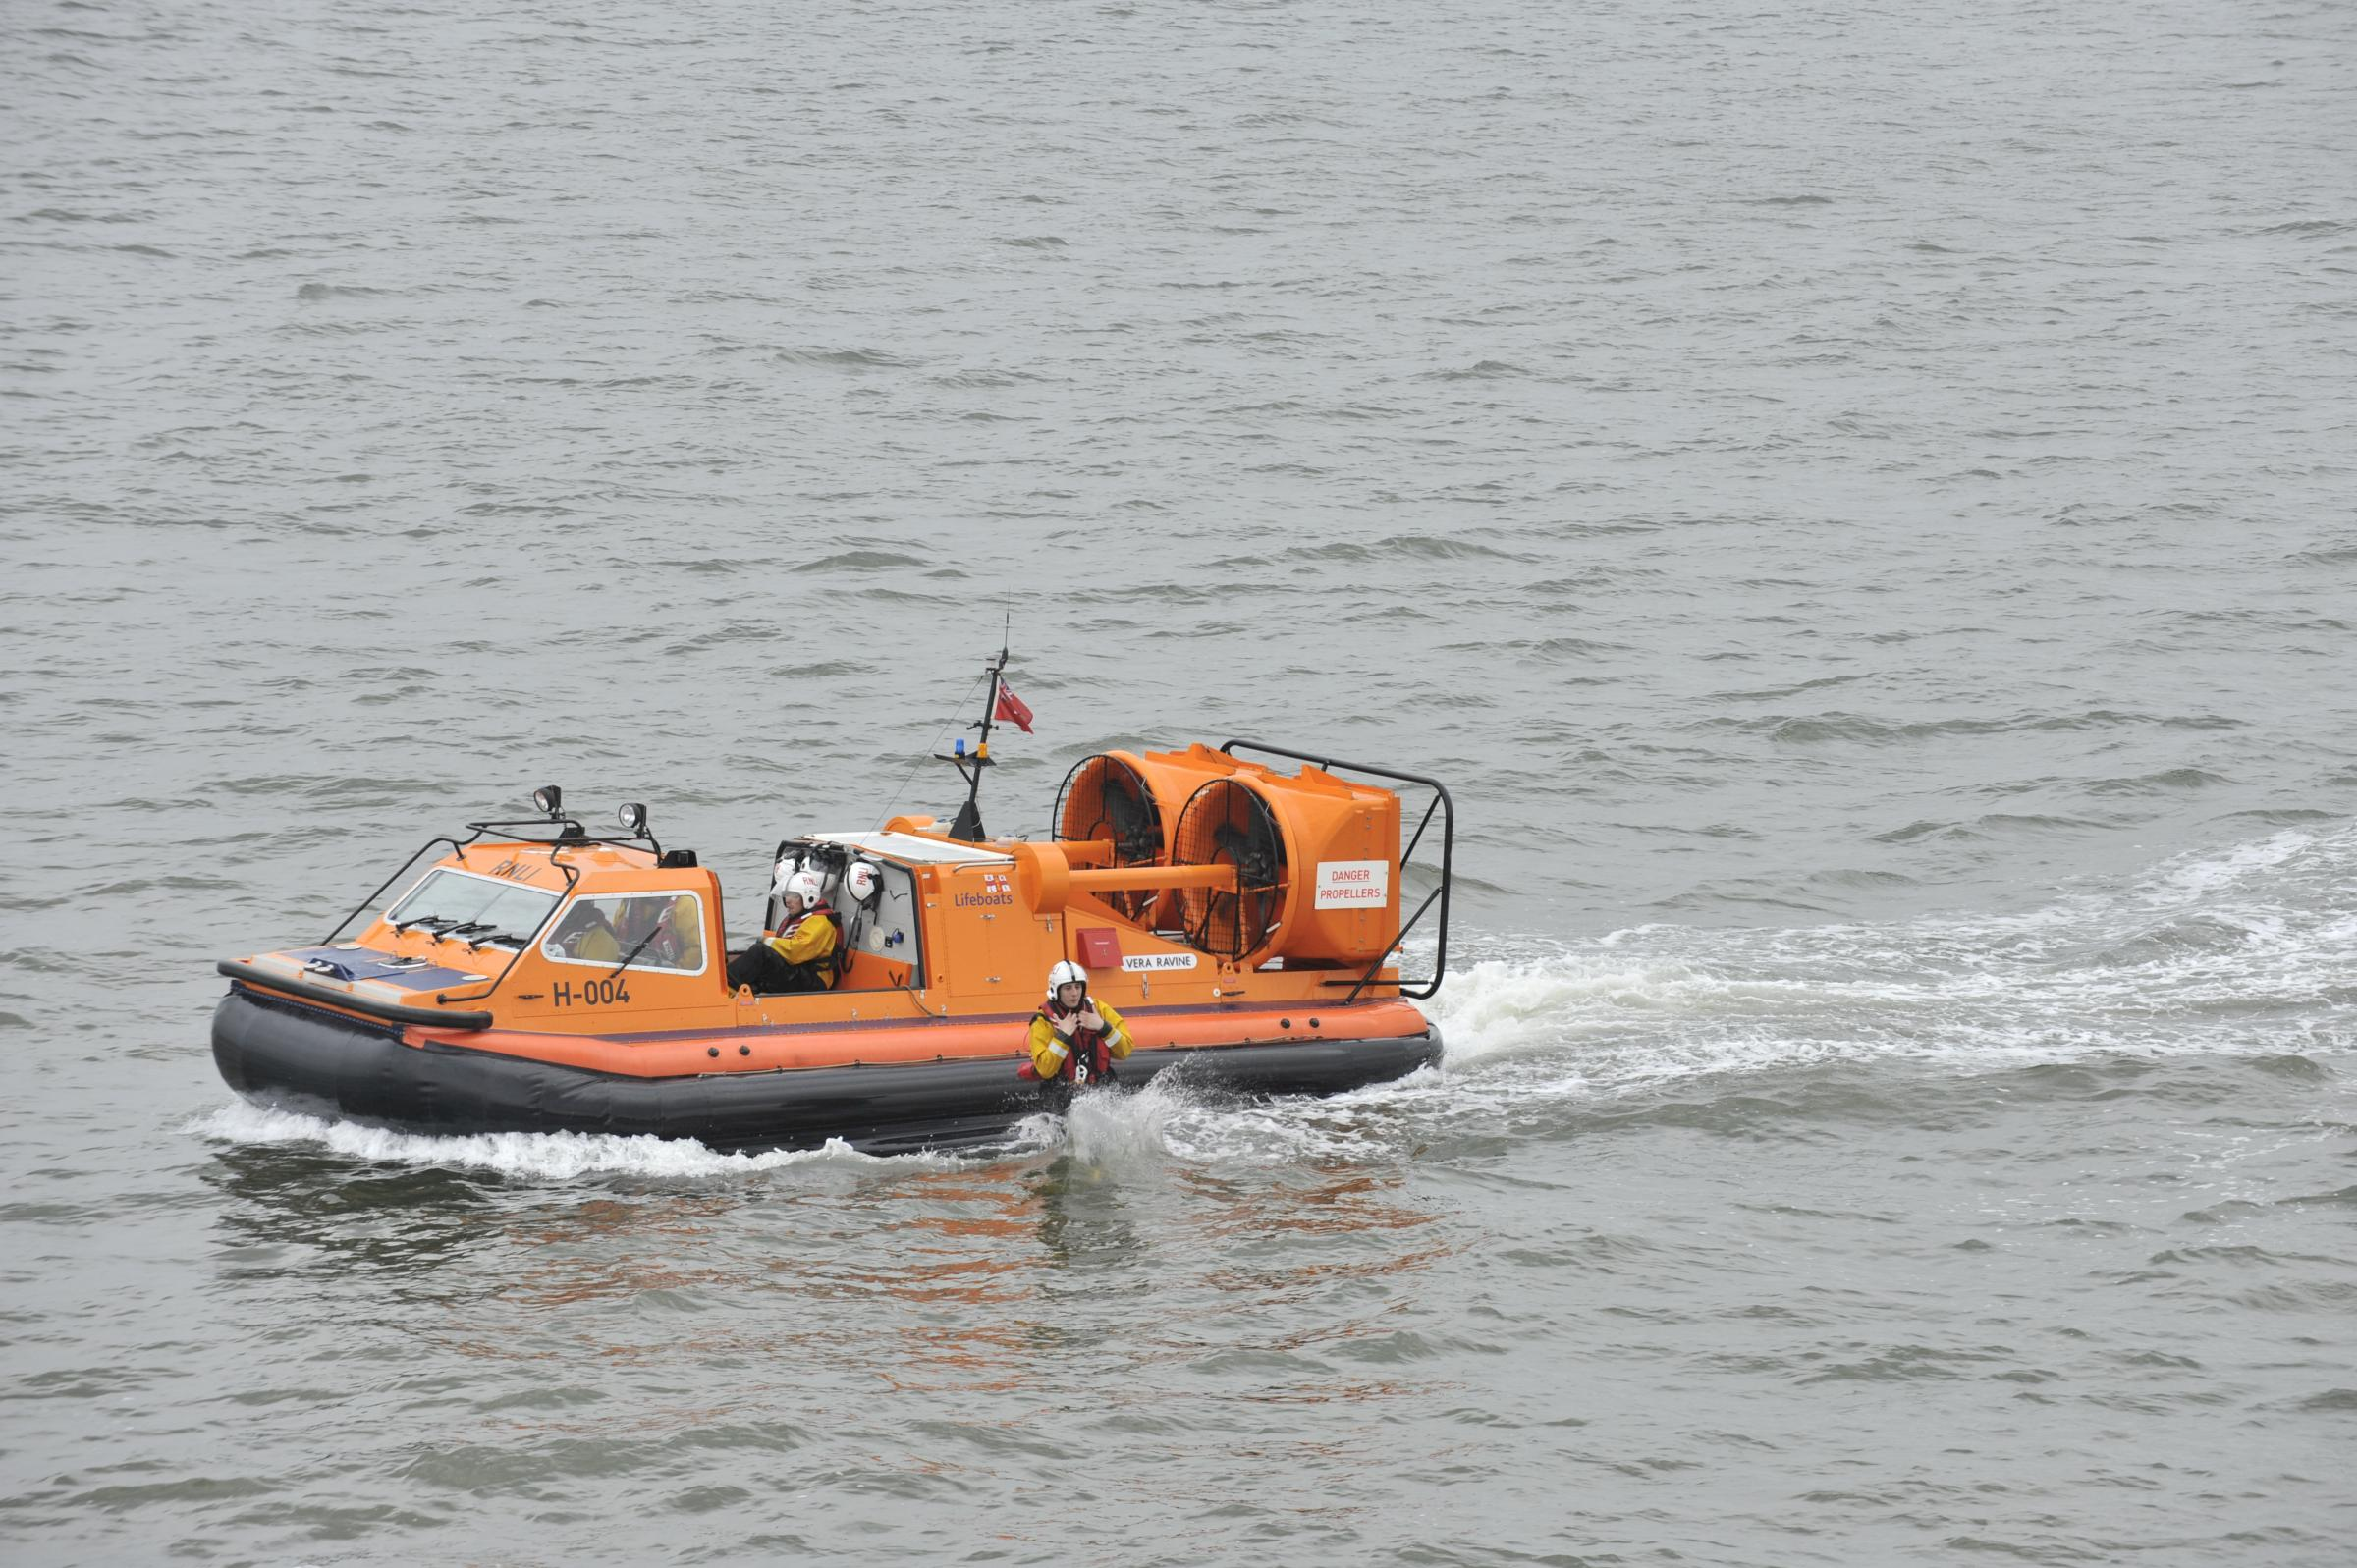 Lifeboat launched to search for woman